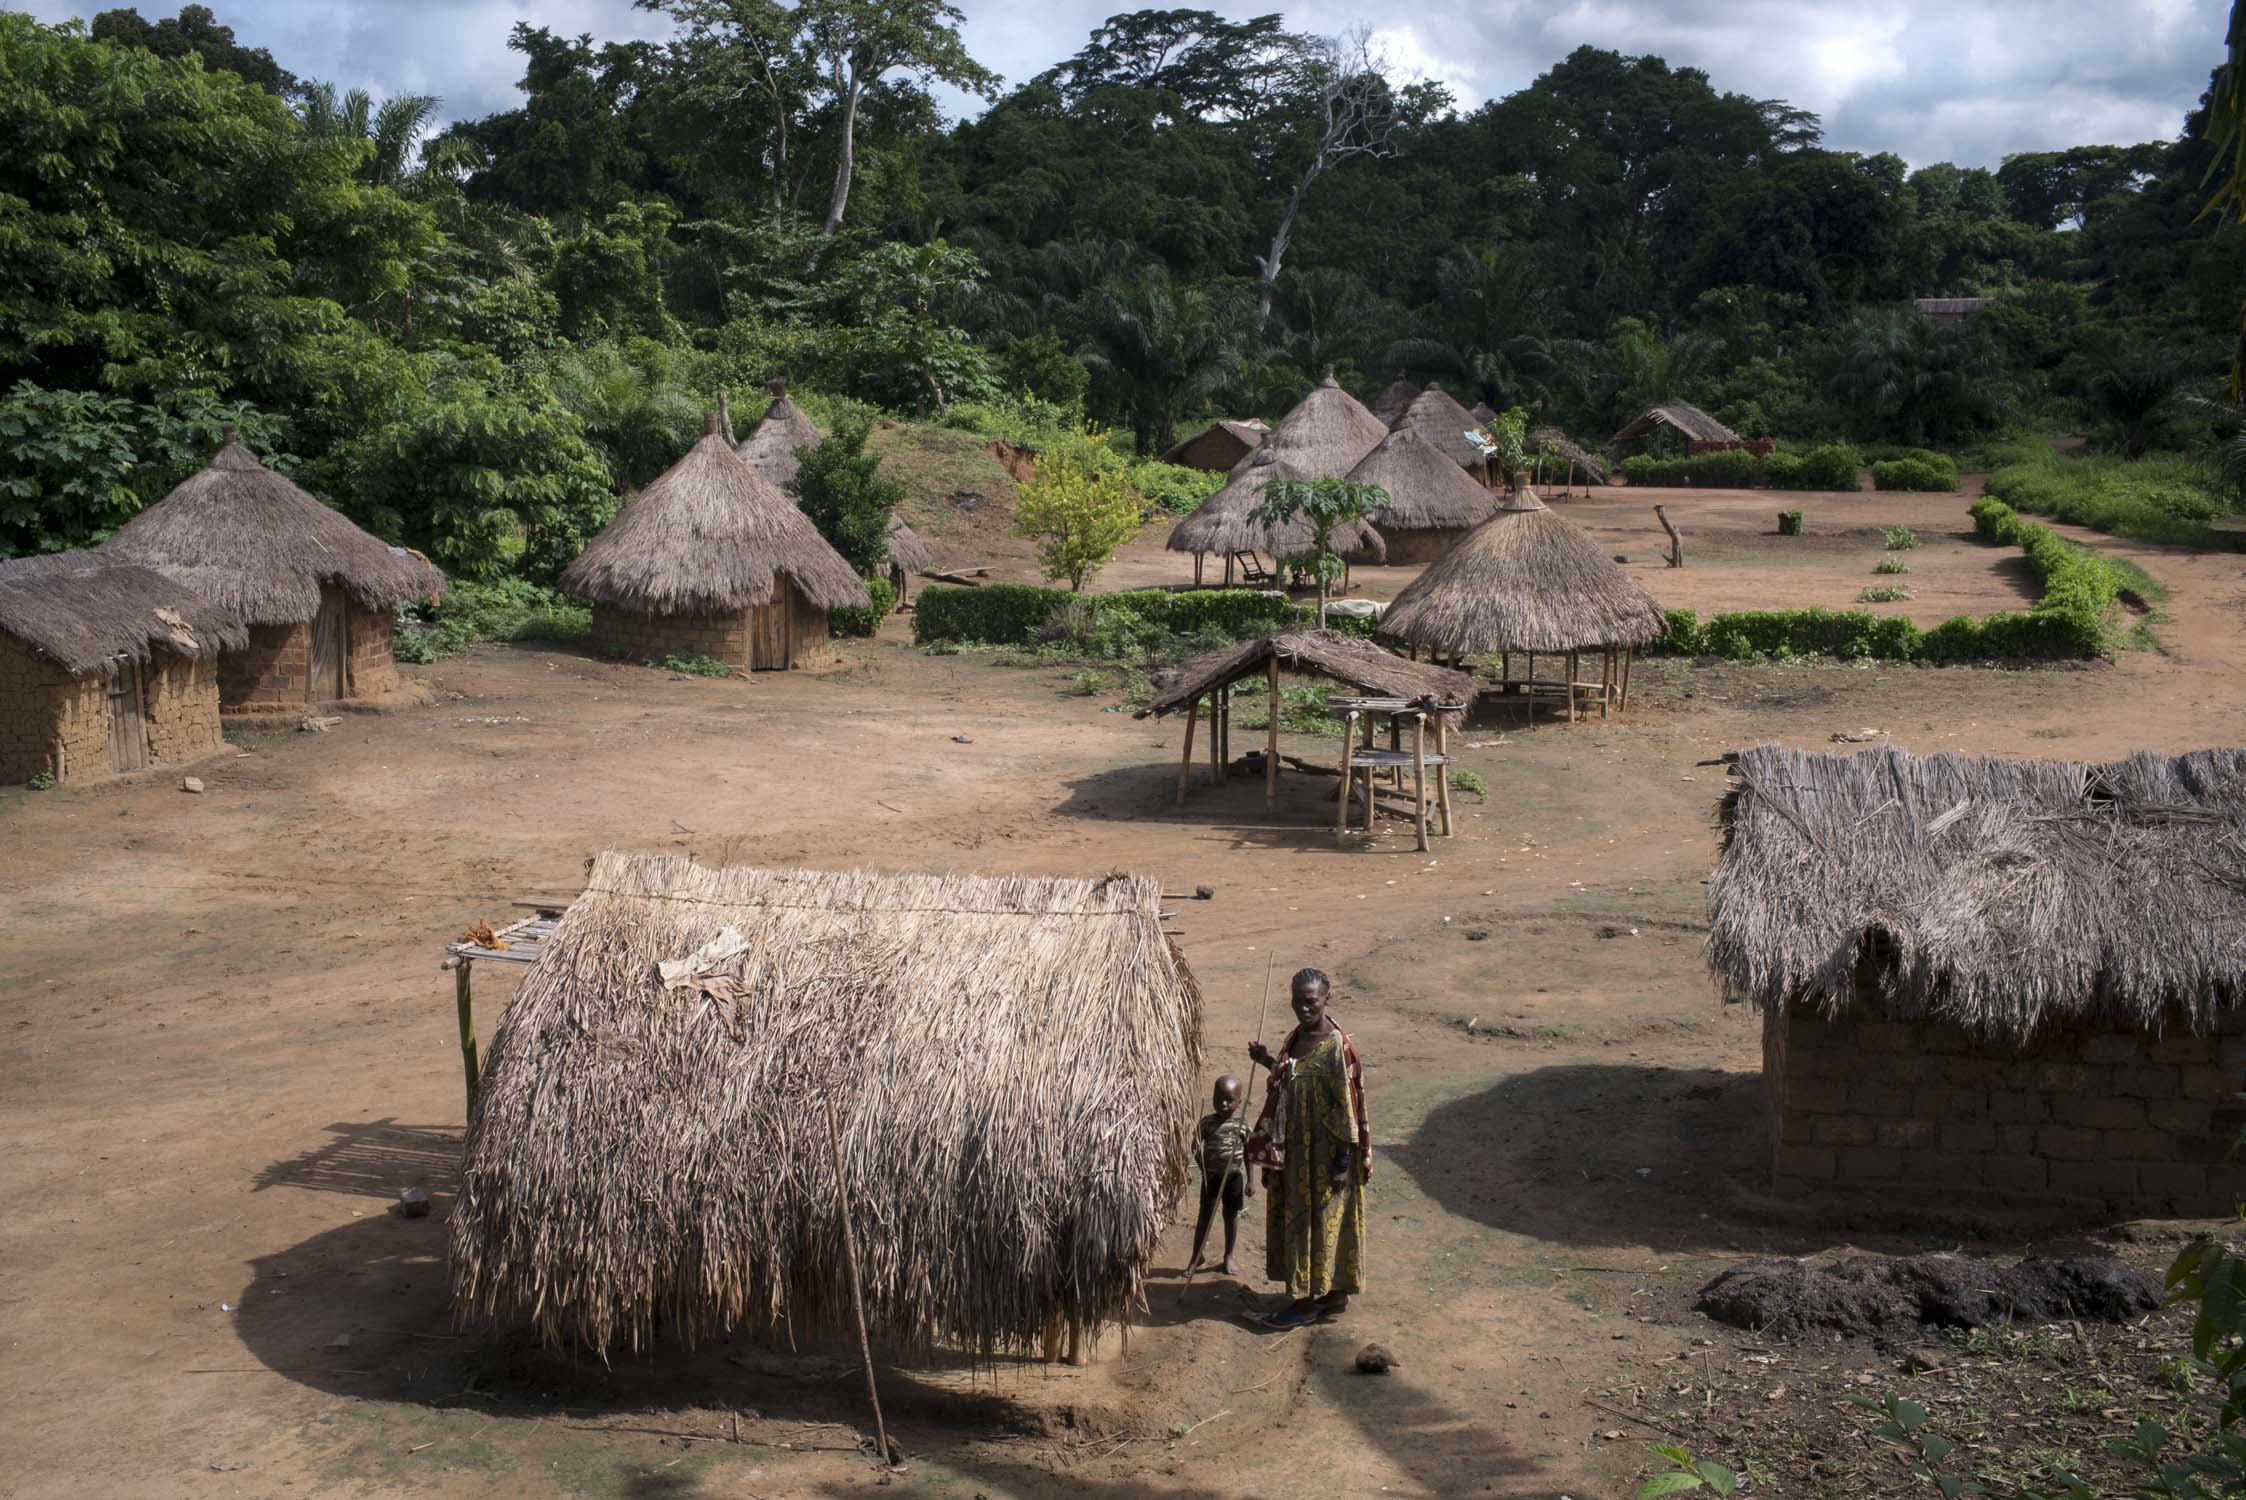 A woman and child stand outside their home in the village of Nzeret, the epicenter of a measles epidemic that spread through this remote area of northern Democratic Republic of the Congo (DRC) in early 2016. In response, MSF carried out a 5-day measles vaccination campaign. MSF had named measles among the top five epidemics that could erupt or worsen in 2016. DRC has the fifth highest under-five mortality rate in the world, with an estimated 465,000 children losing their life to preventable diseases every year. Nzeret, Bas-Uele province, Democratic Republic of the Congo. May 27, 2016